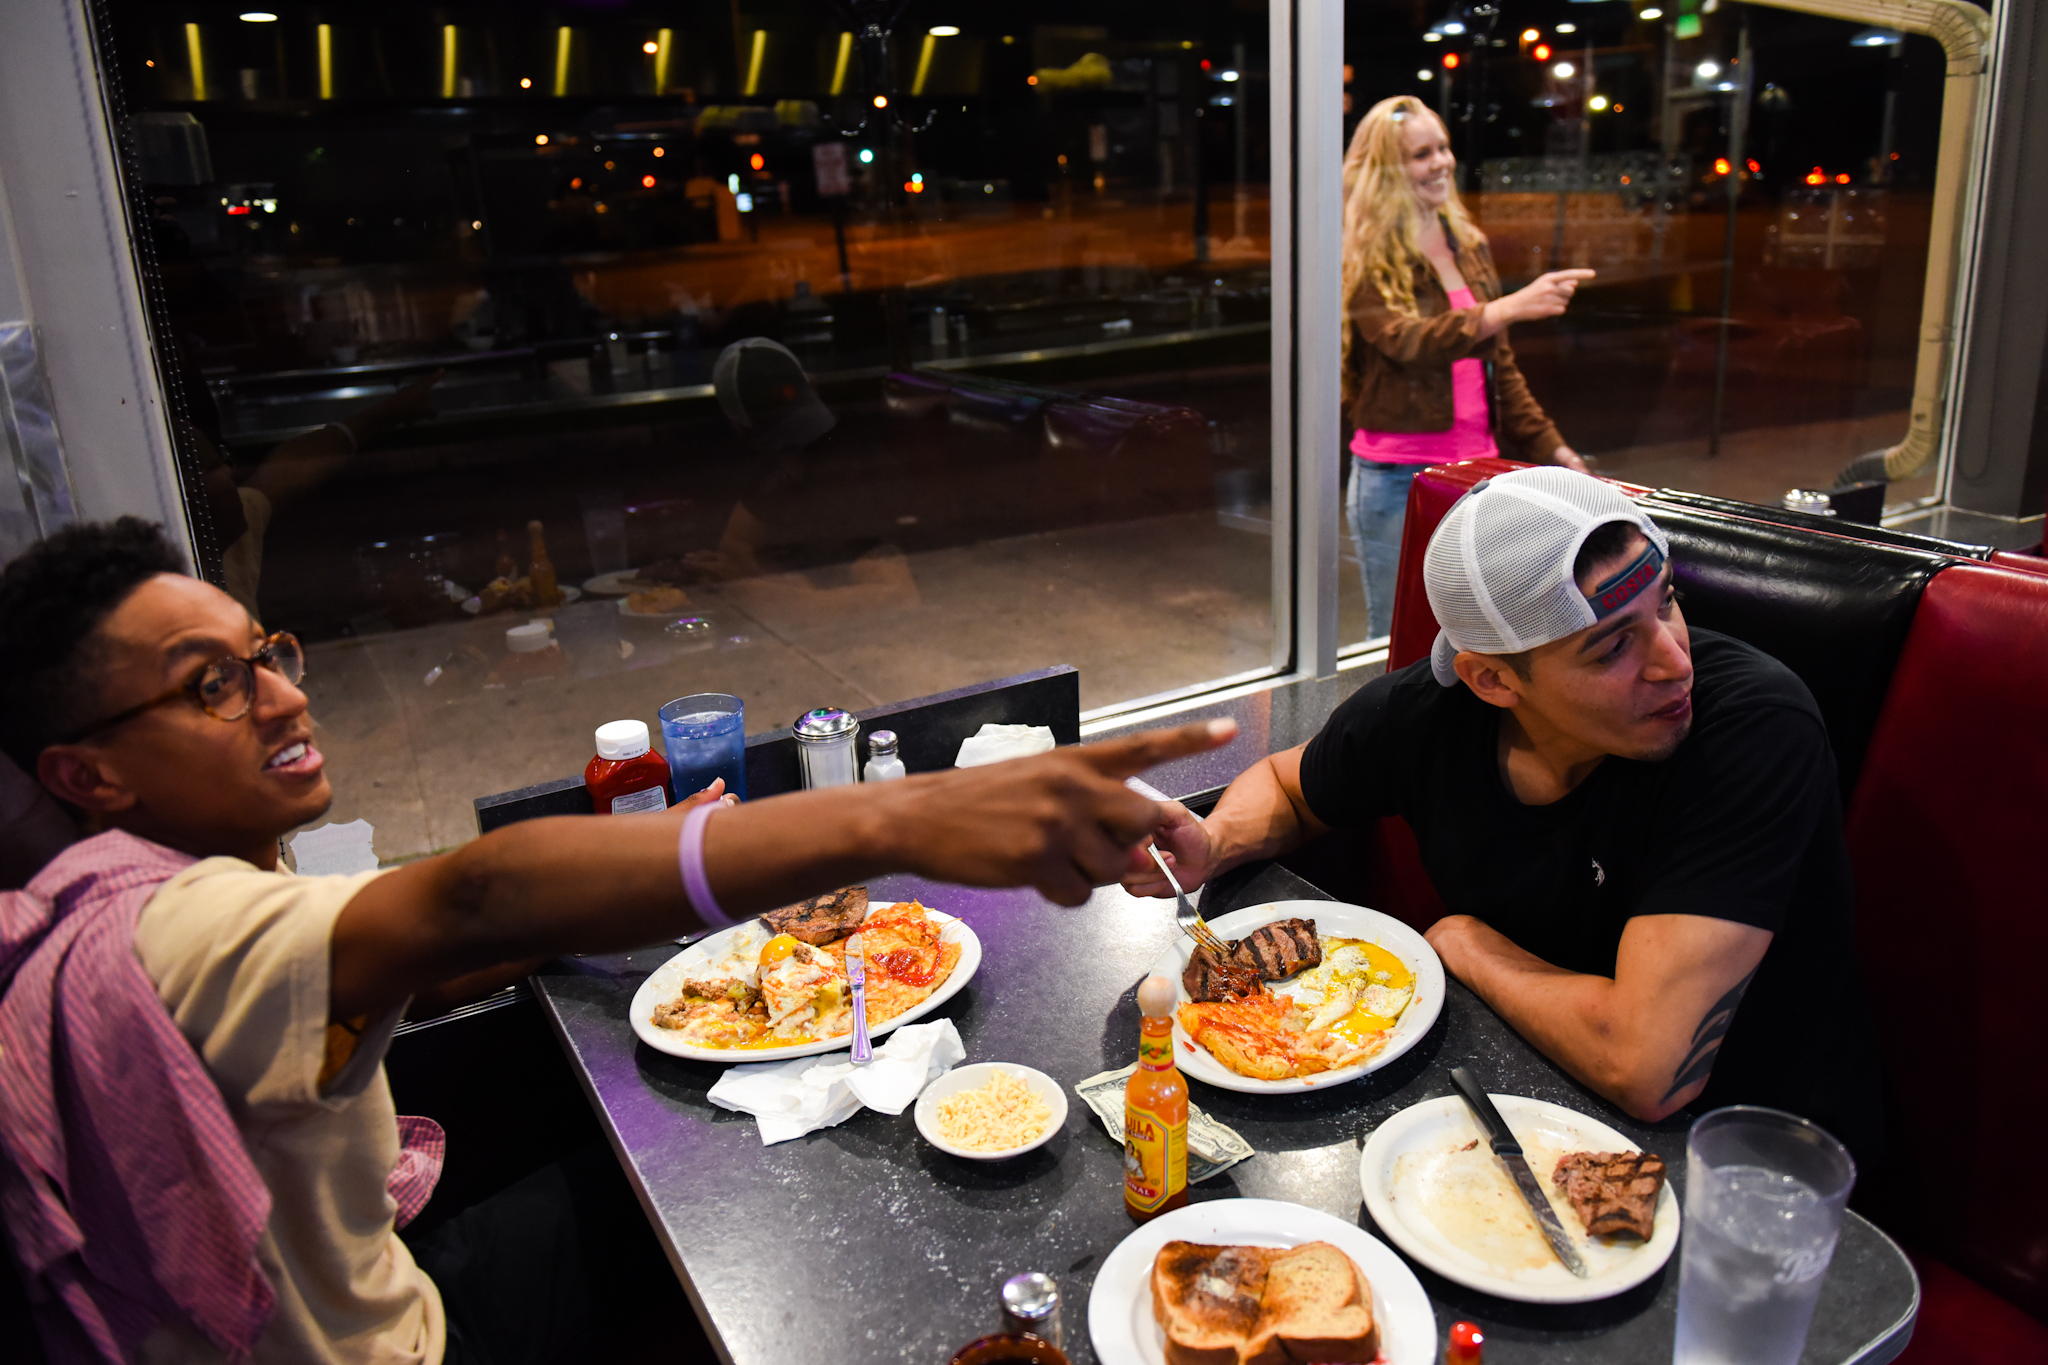 4 a.m.: Adam Tewahade (left) points as a woman smoking a cigarette tries to get her friend's attention inside the Denver Diner. Tewahade and Joe, across from him, met earlier in the night on Larimer Street.